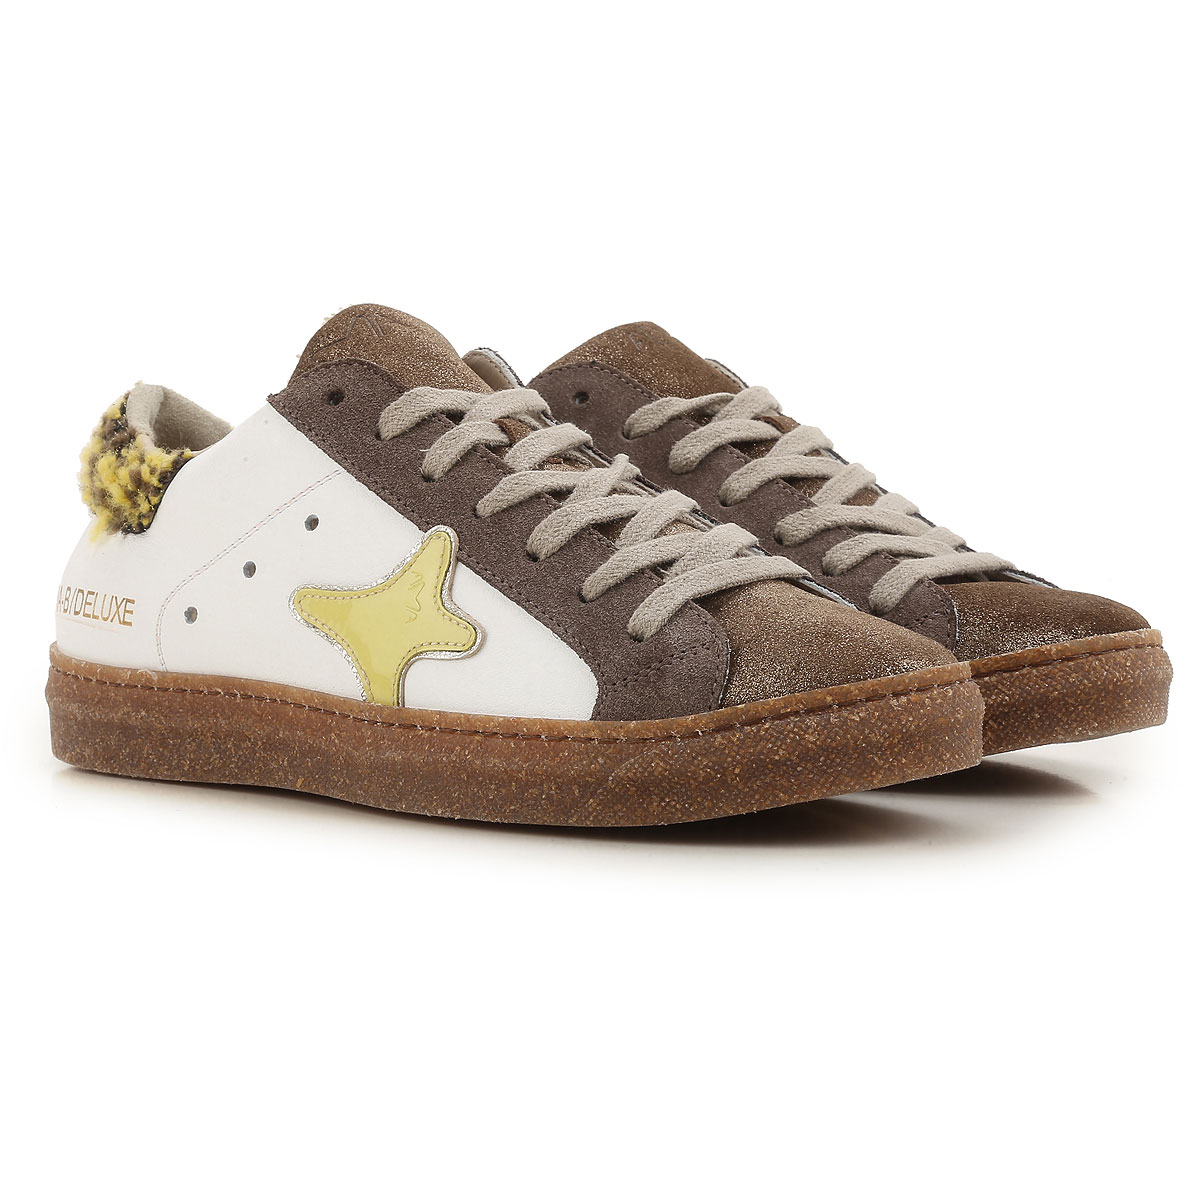 Image of Ama Brand Sneakers for Women On Sale, Brown, Leather, 2017, EUR 36 - UK 3 - USA 5.5 EUR 37 - UK 4 - USA 6.5